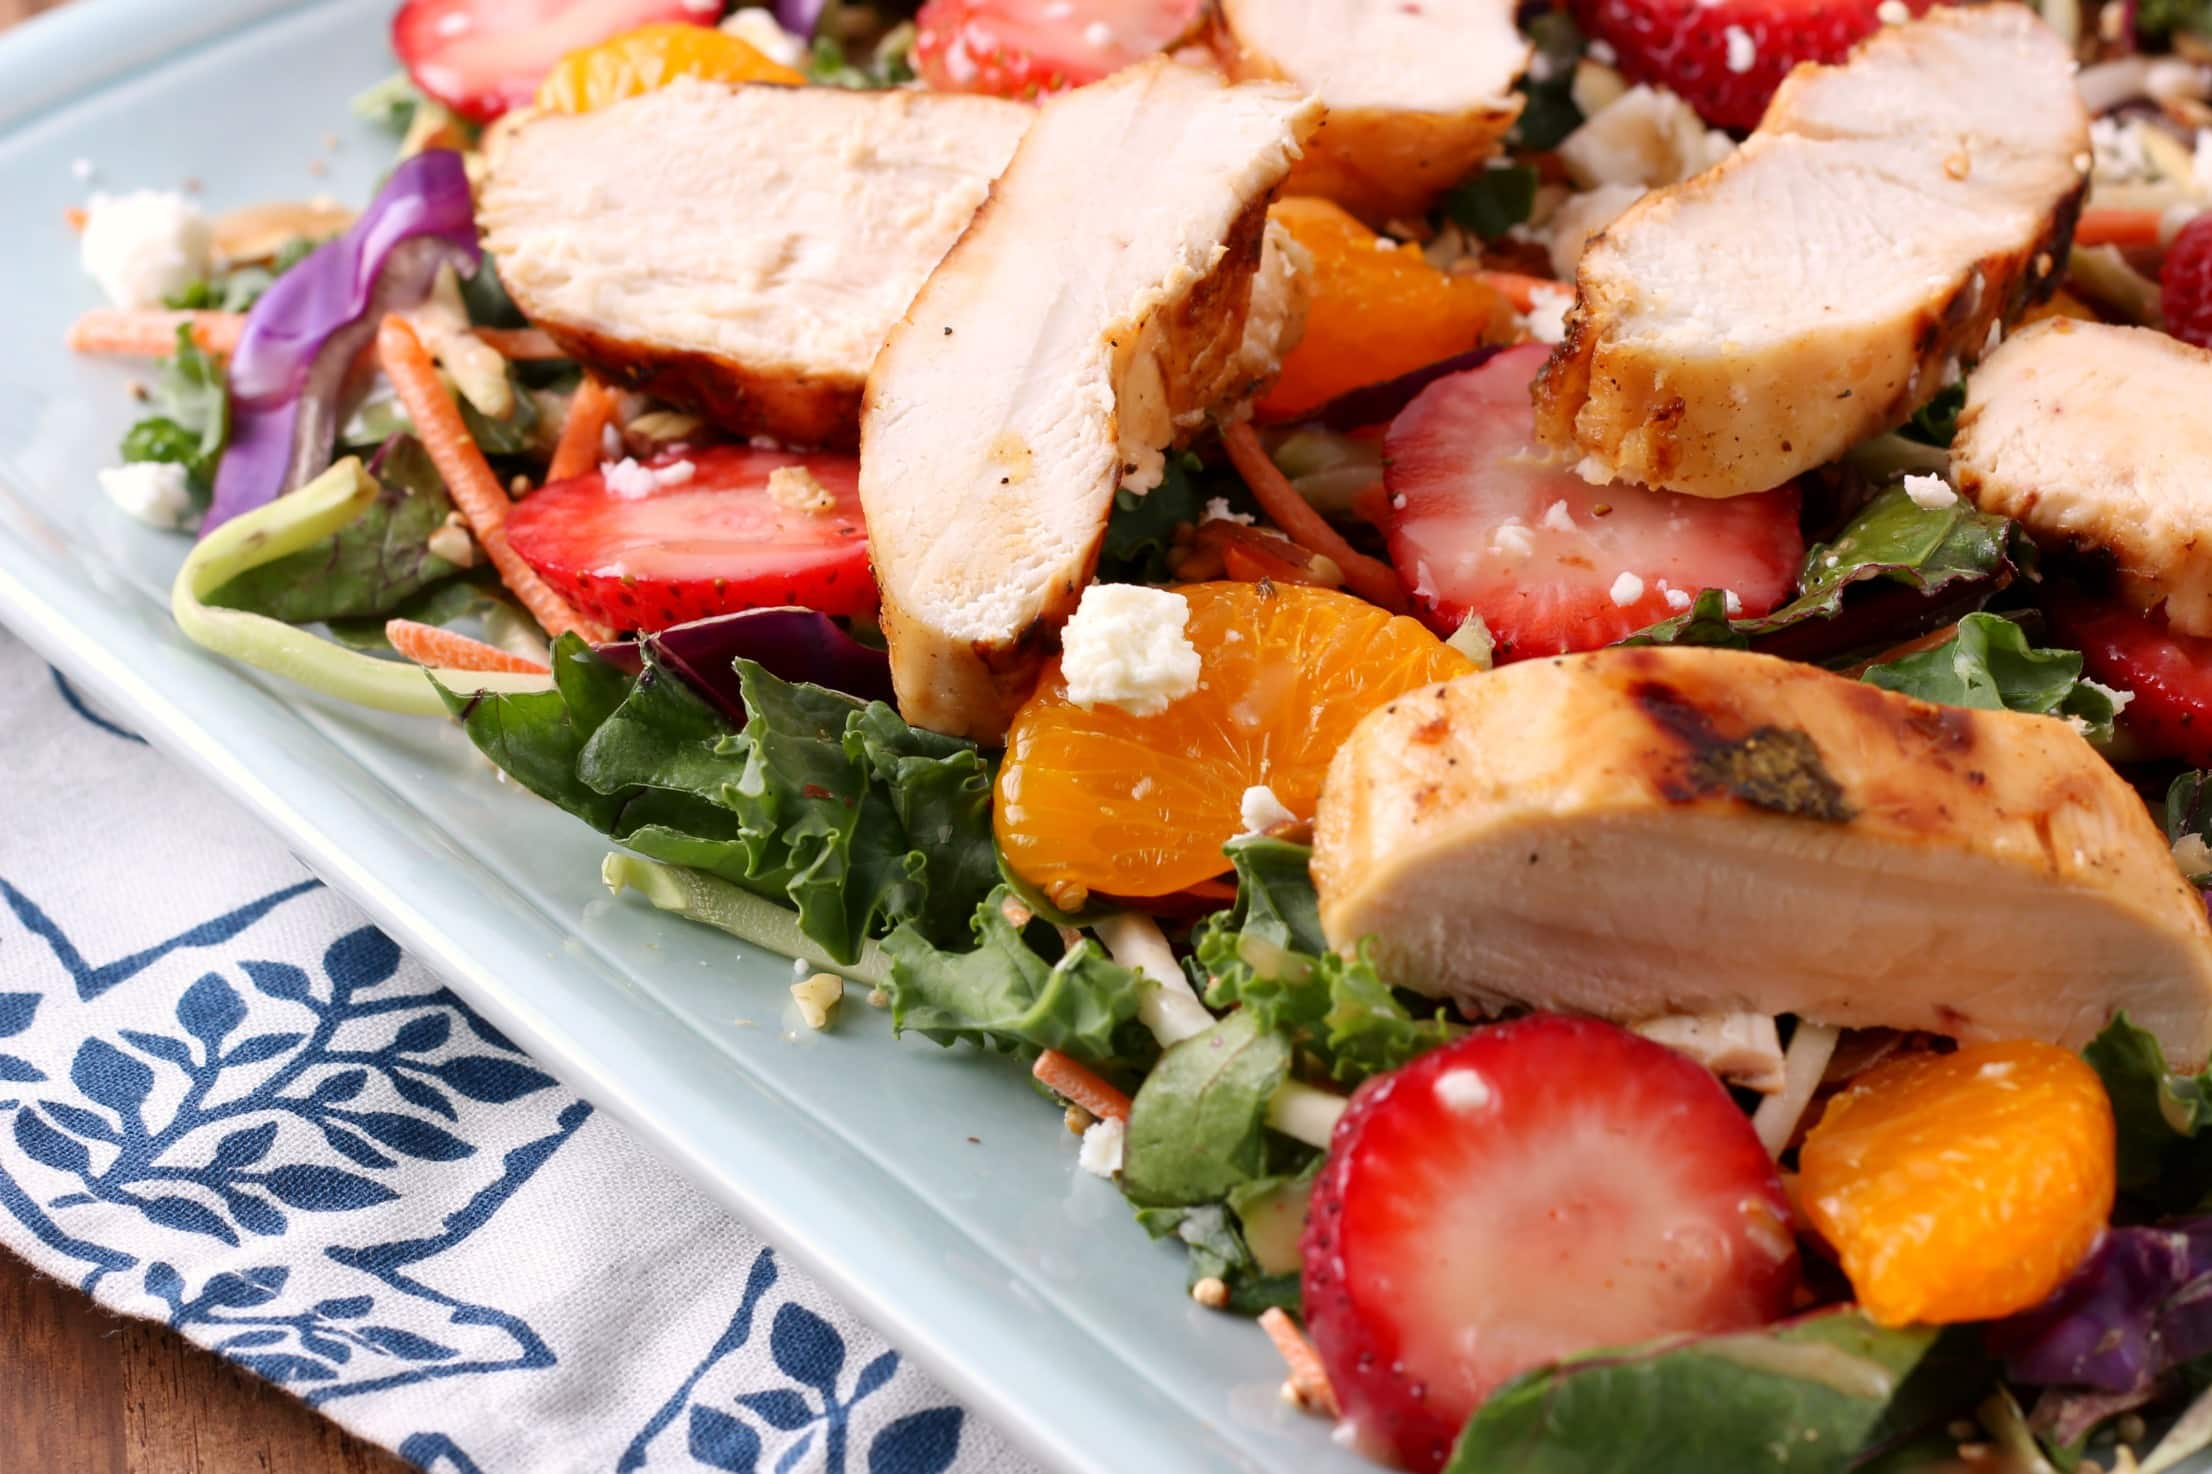 Grilled Citrus Chicken with Strawberry Salad from A Kitchen Addiction